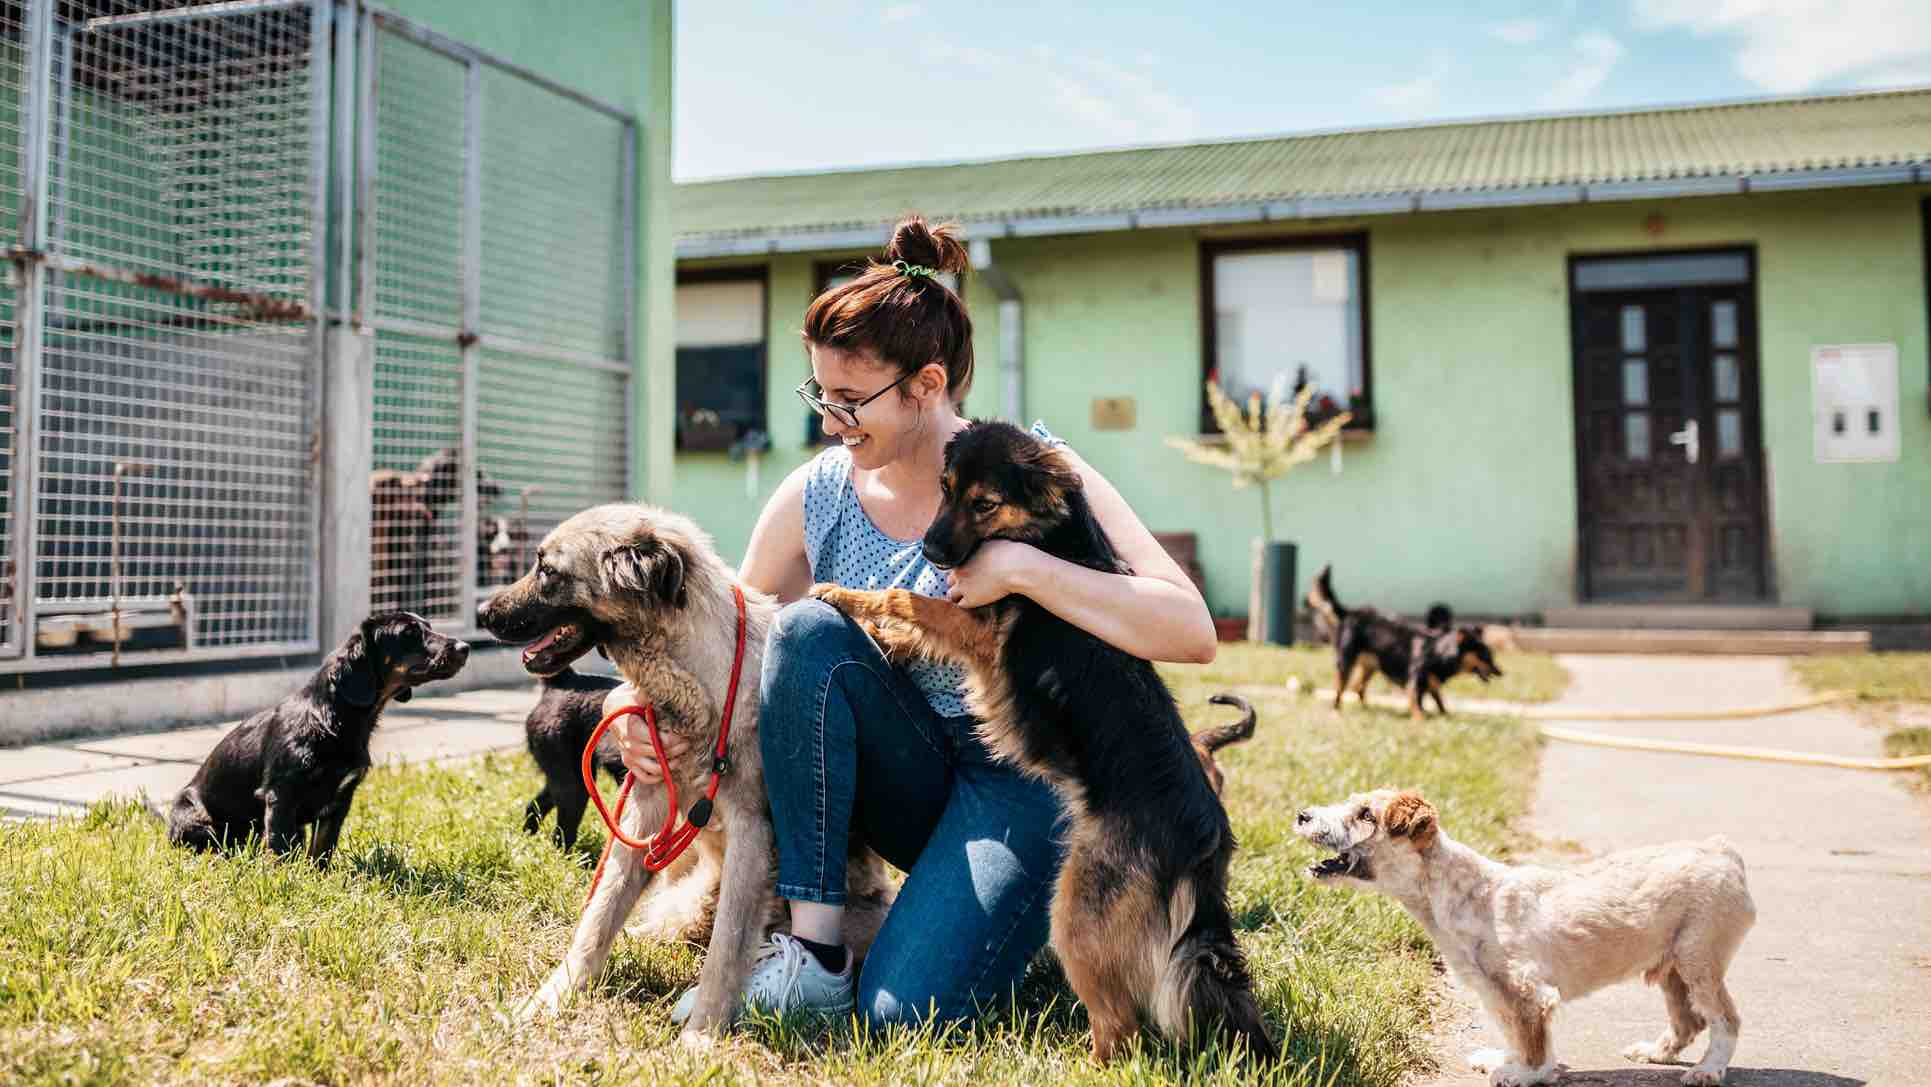 Person adopting dogs at shelter